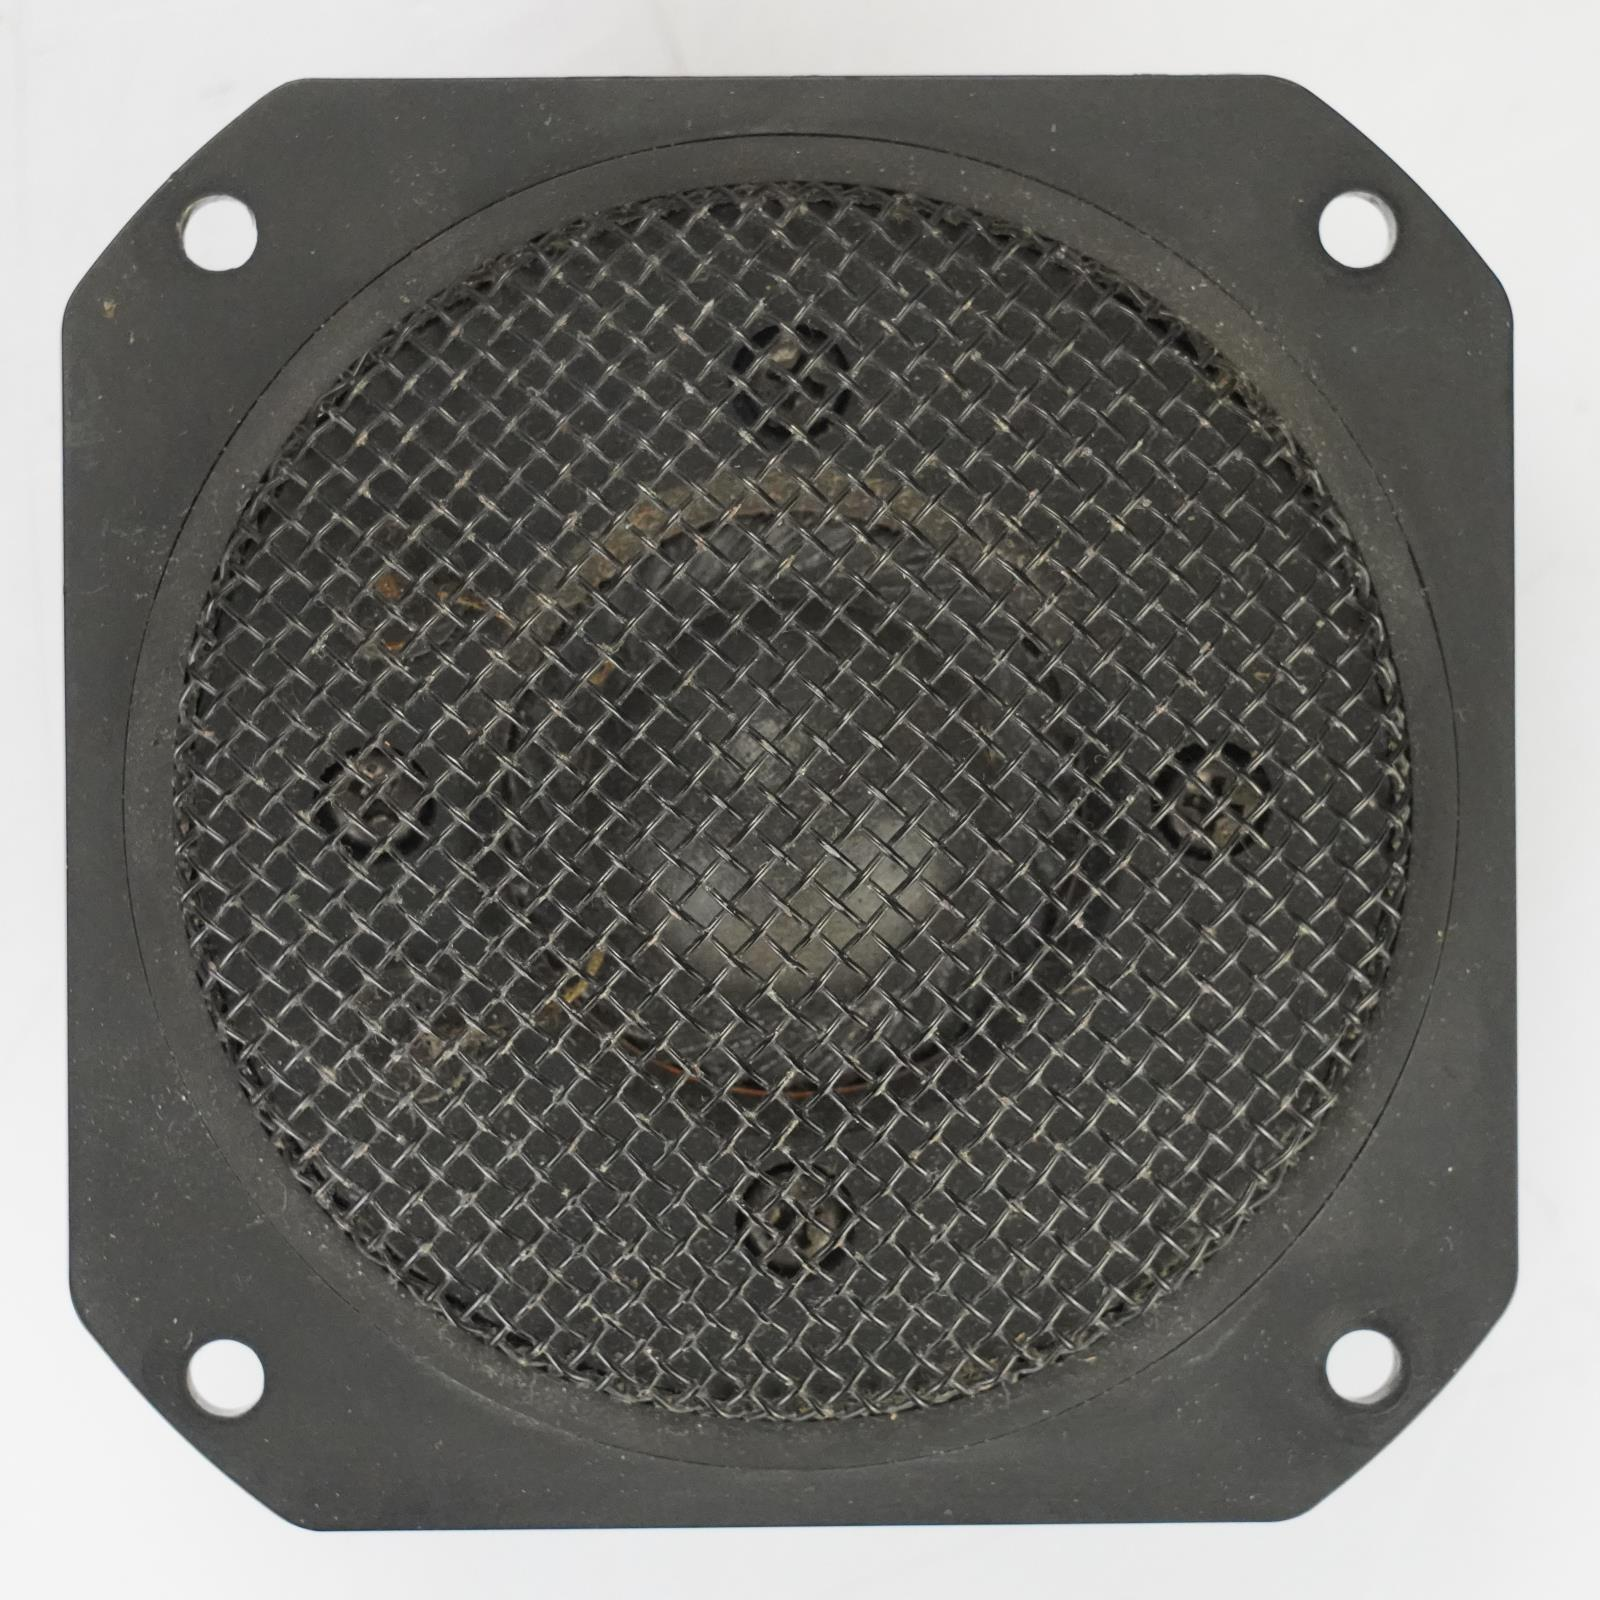 Yamaha NS-10M JA-0518 Factory Speaker Tweeter owned by Ed Cherney #39129